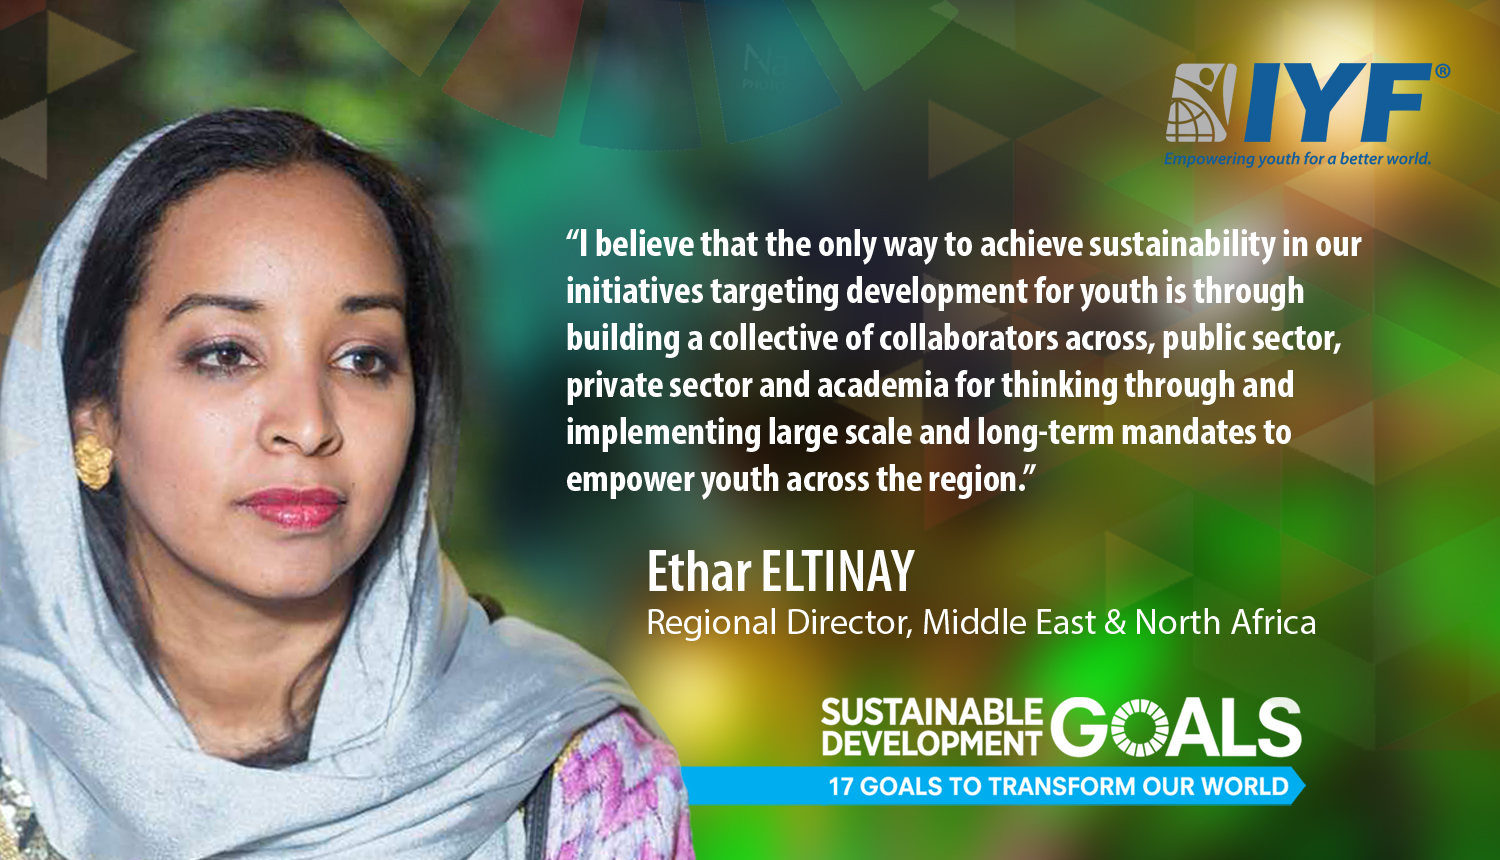 Ethar ELTINAY, Regional Director IYF Middle East & North Africa